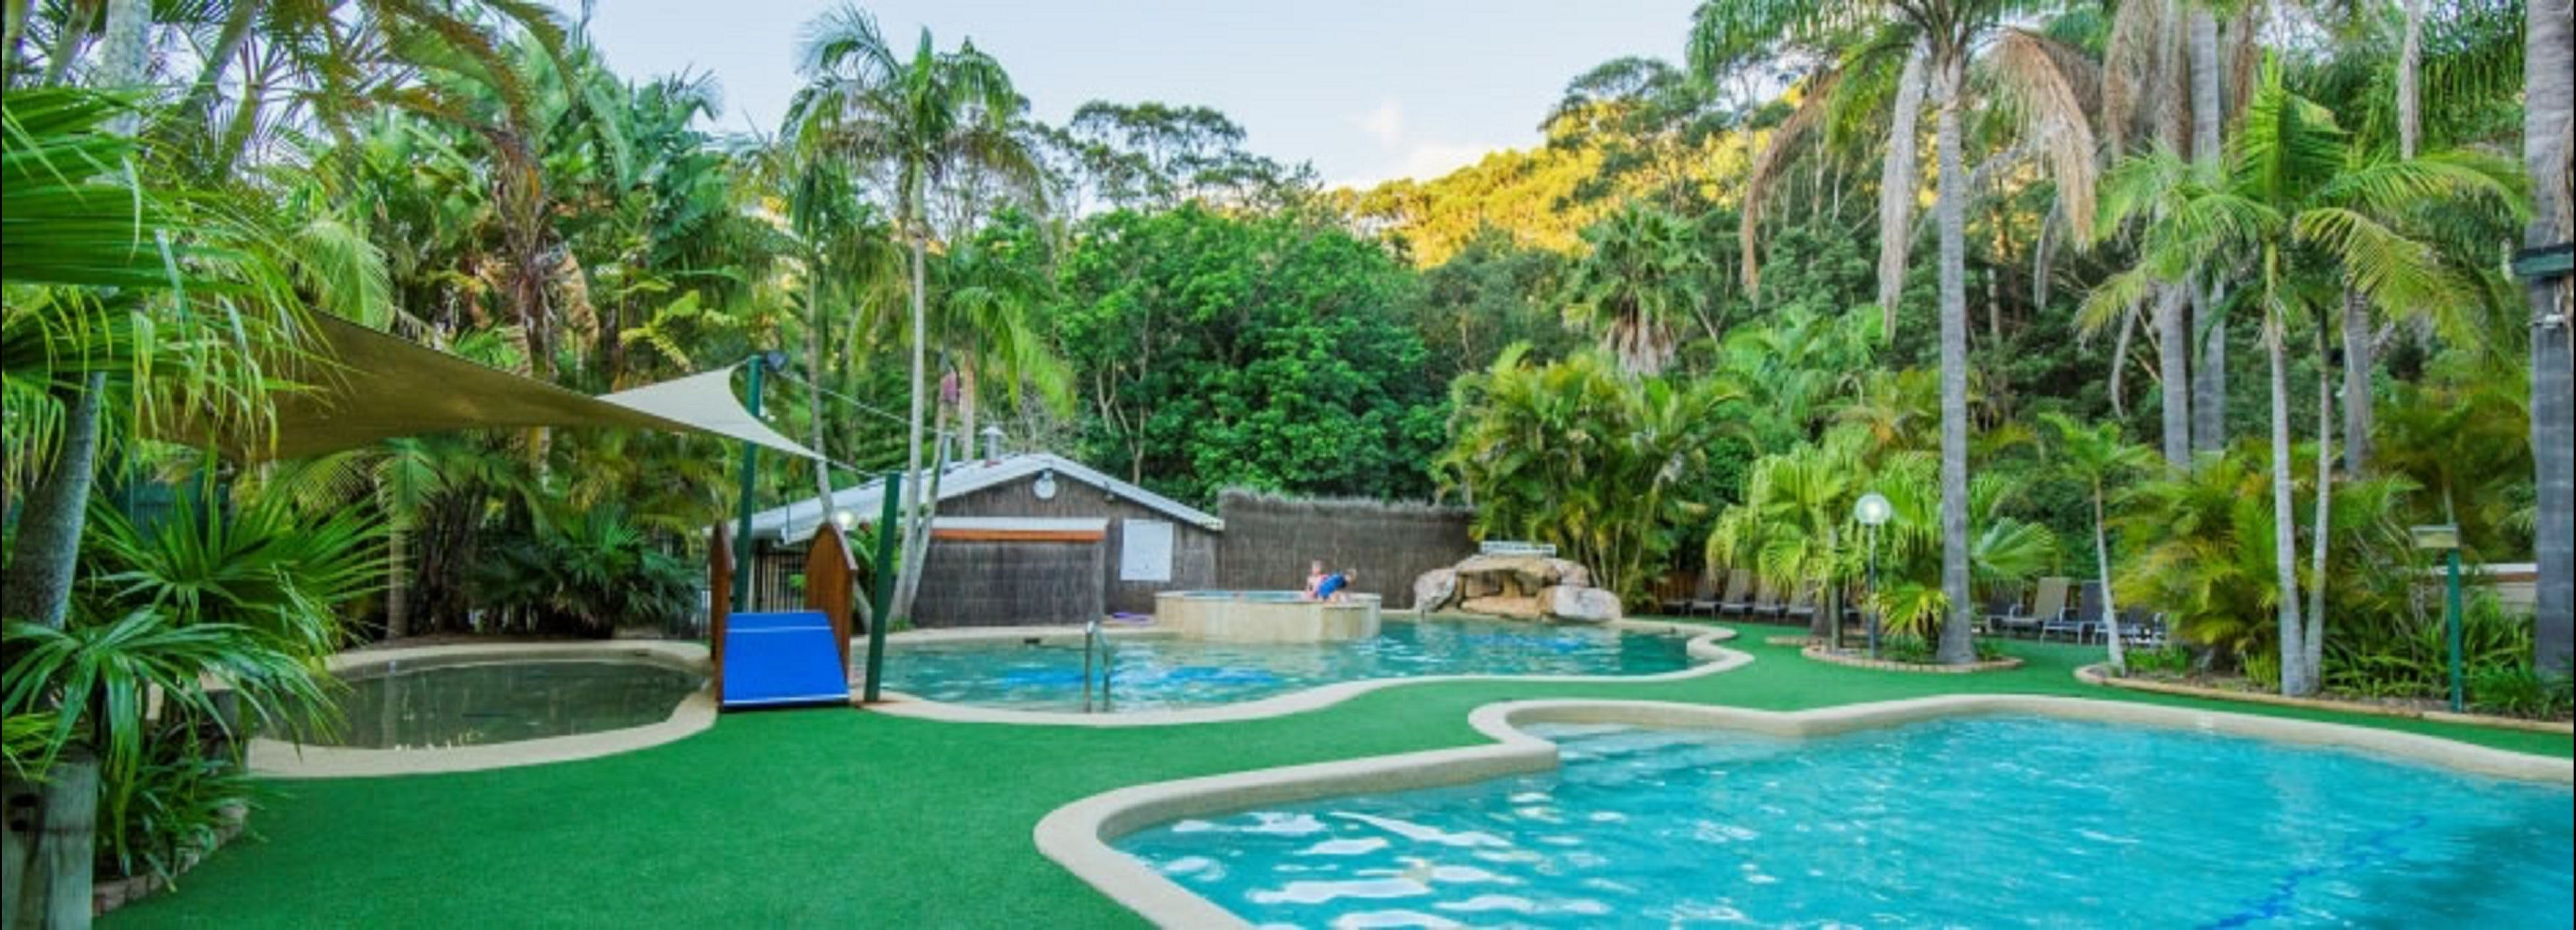 The Palms at Avoca - Accommodation Coffs Harbour